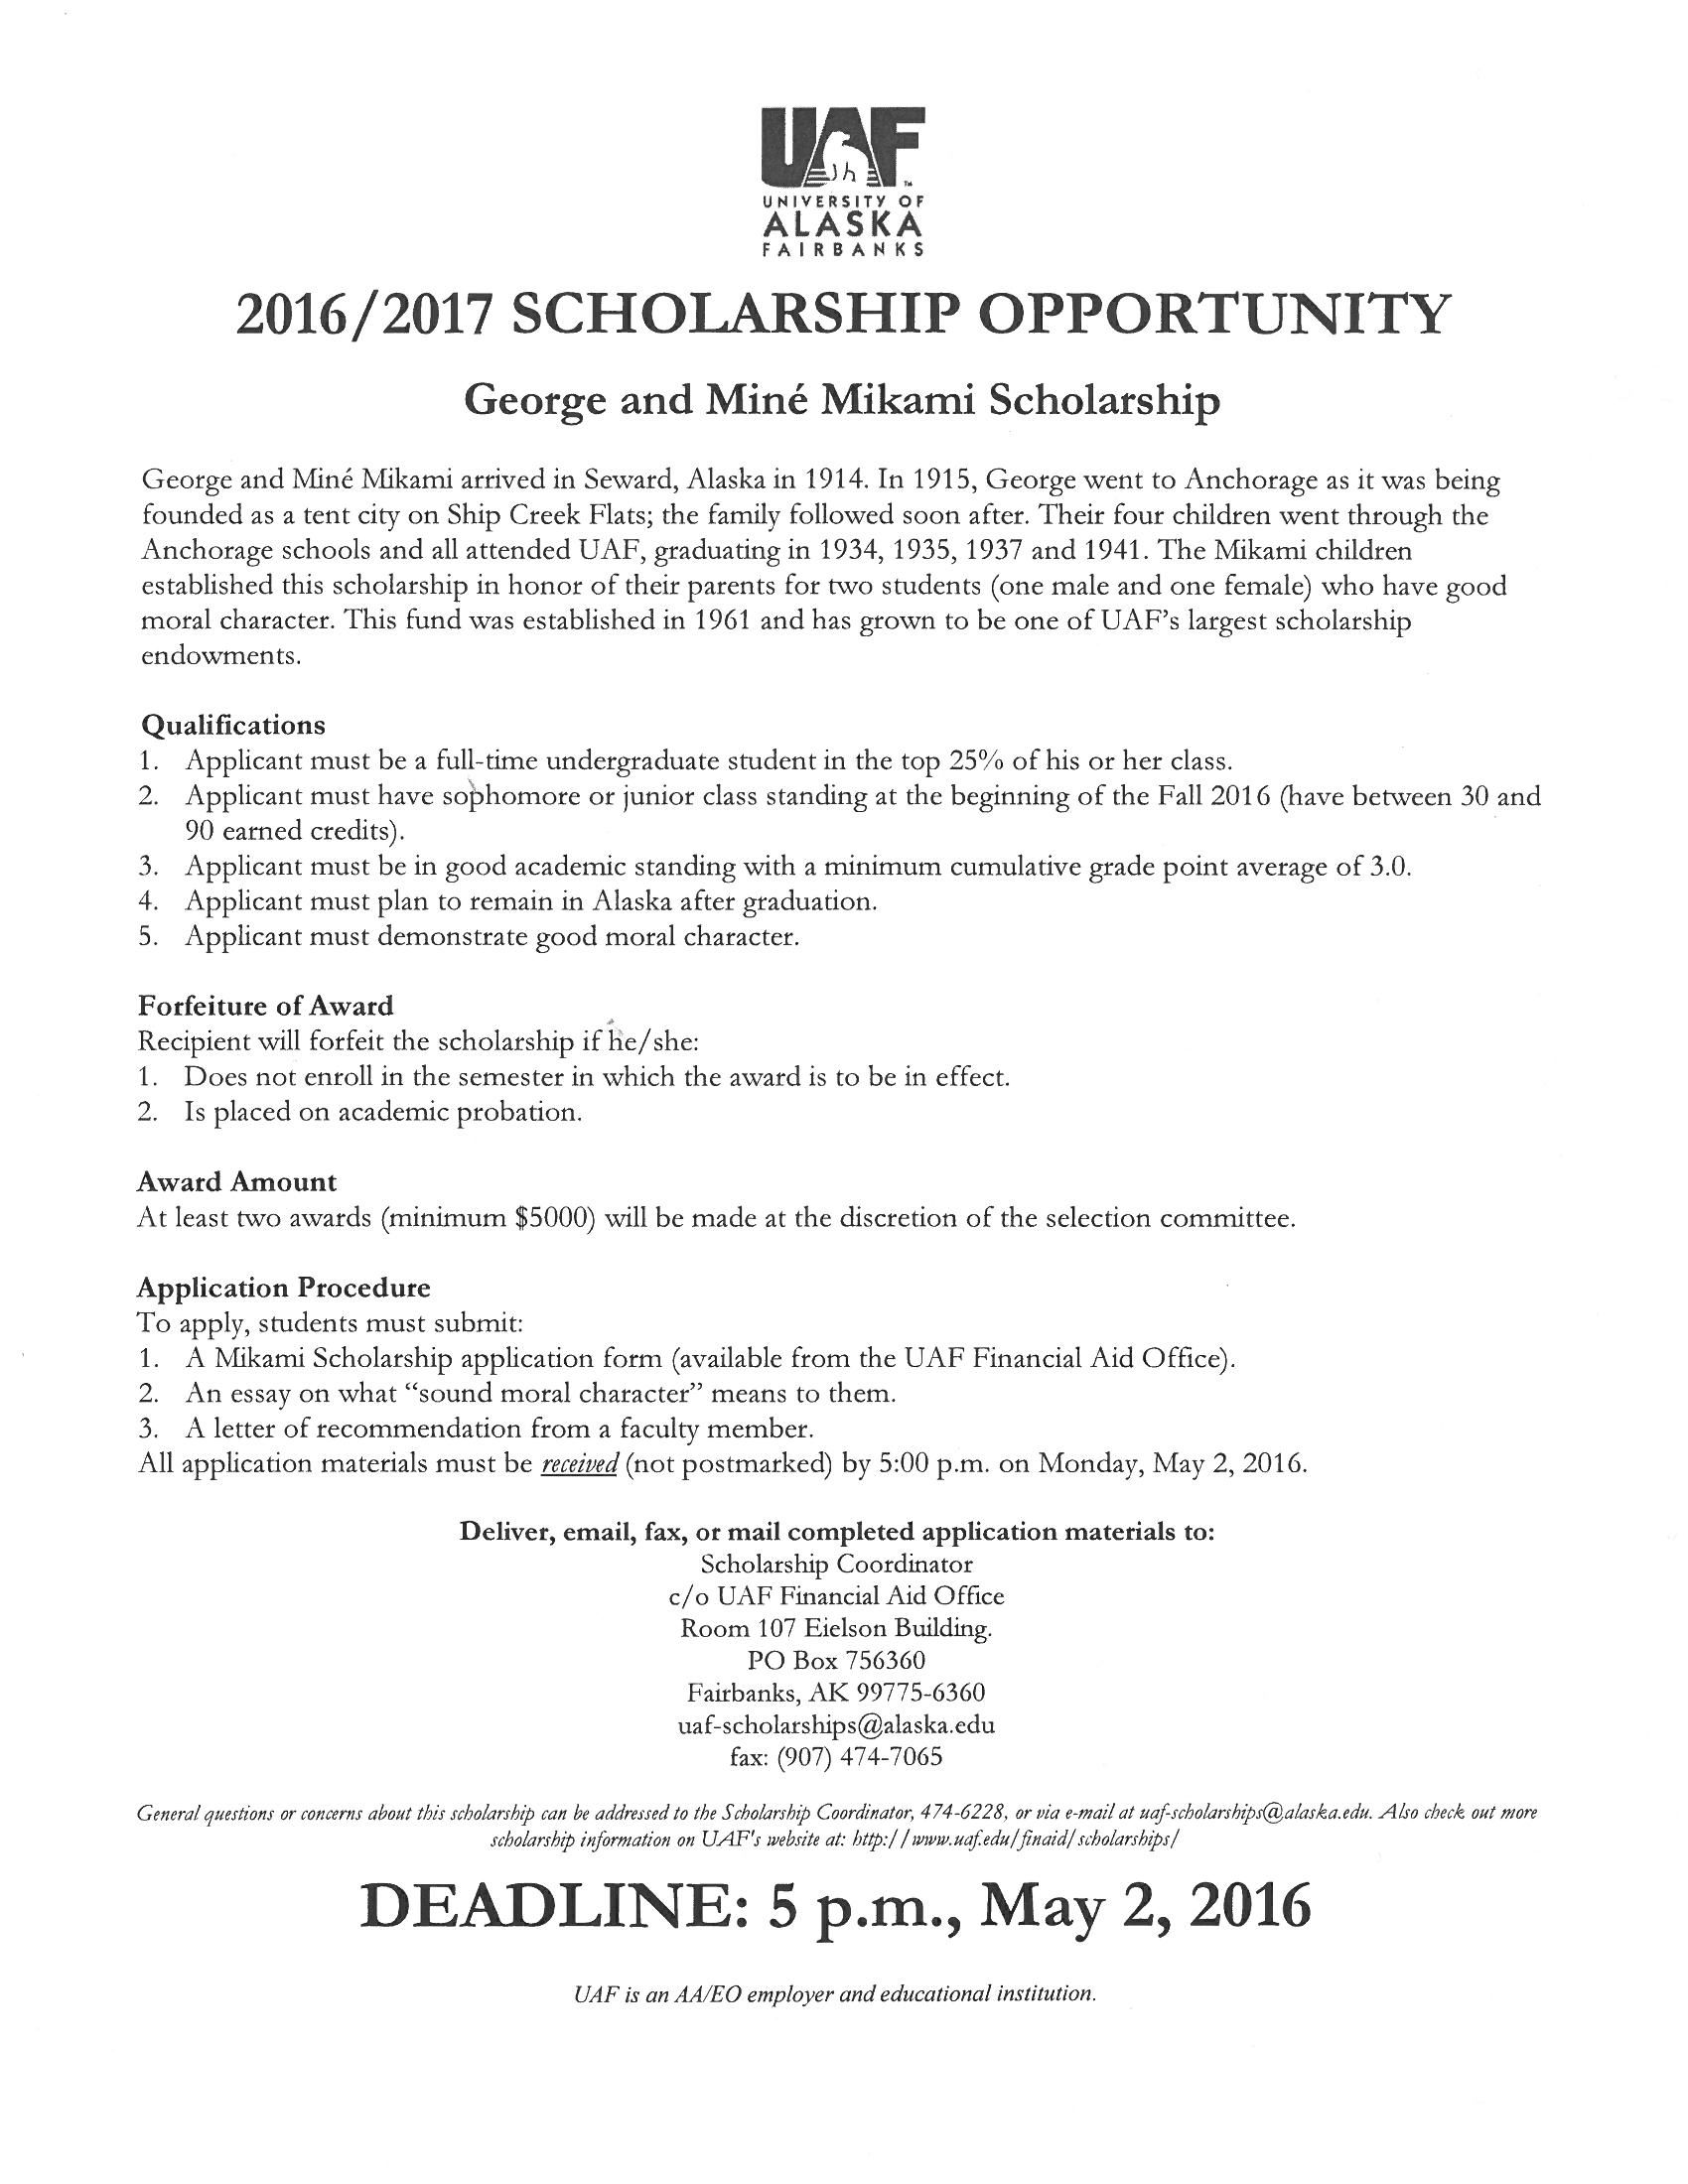 Pin By Uaf Trio Sss On Scholarships